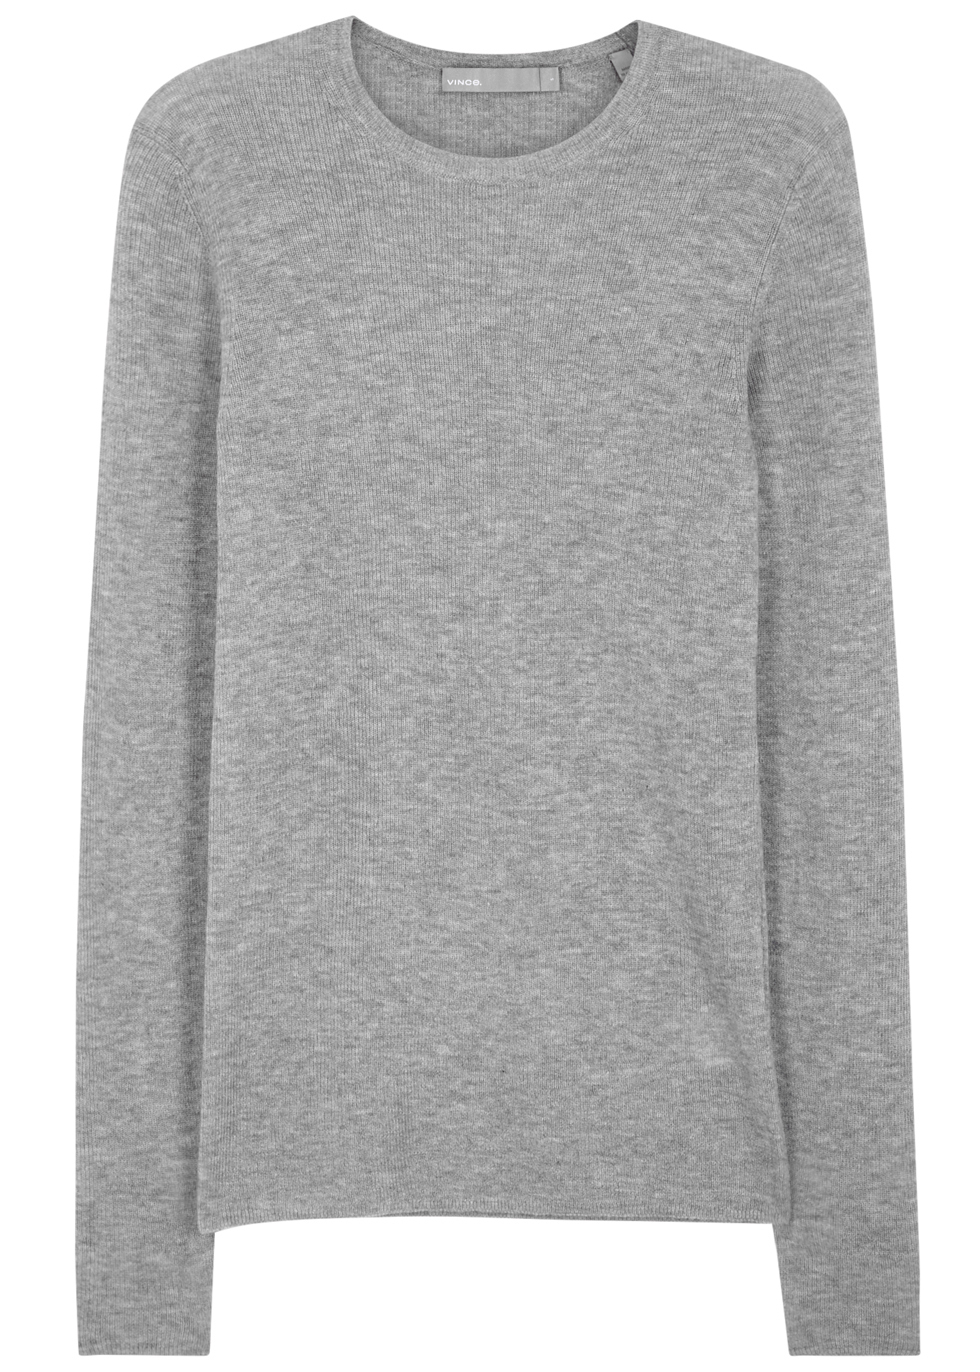 Grey Cashmere Jumper - pattern: plain; style: standard; predominant colour: mid grey; occasions: casual; length: standard; fit: standard fit; neckline: crew; fibres: cashmere - 100%; sleeve length: long sleeve; sleeve style: standard; texture group: knits/crochet; pattern type: knitted - fine stitch; wardrobe: investment; season: a/w 2016